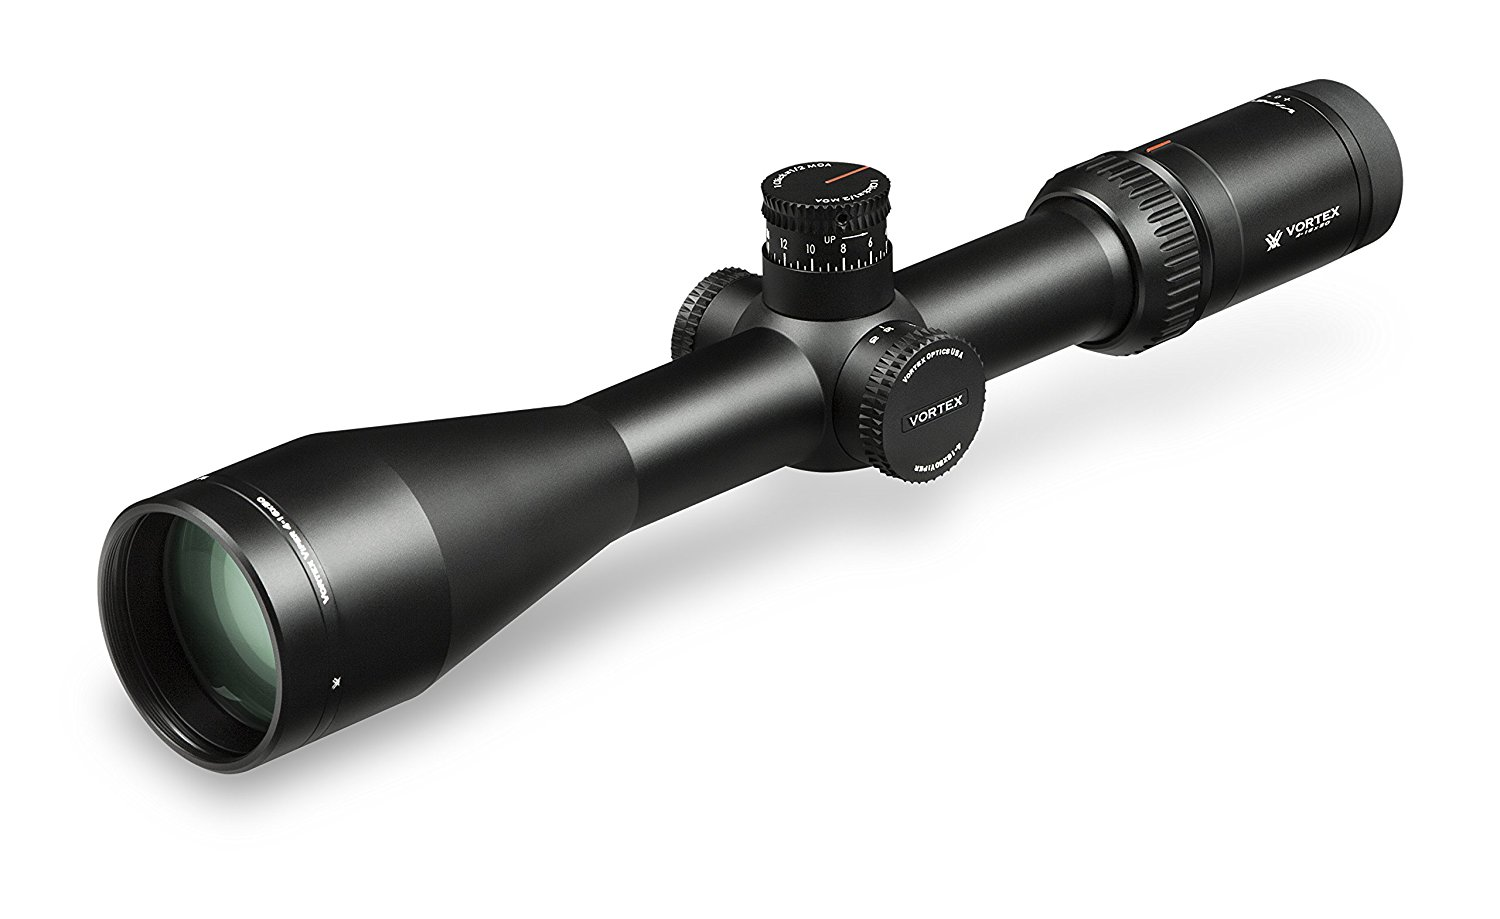 Vortex Optics Viper HS Long Range Rifle Scope, 4-16x50